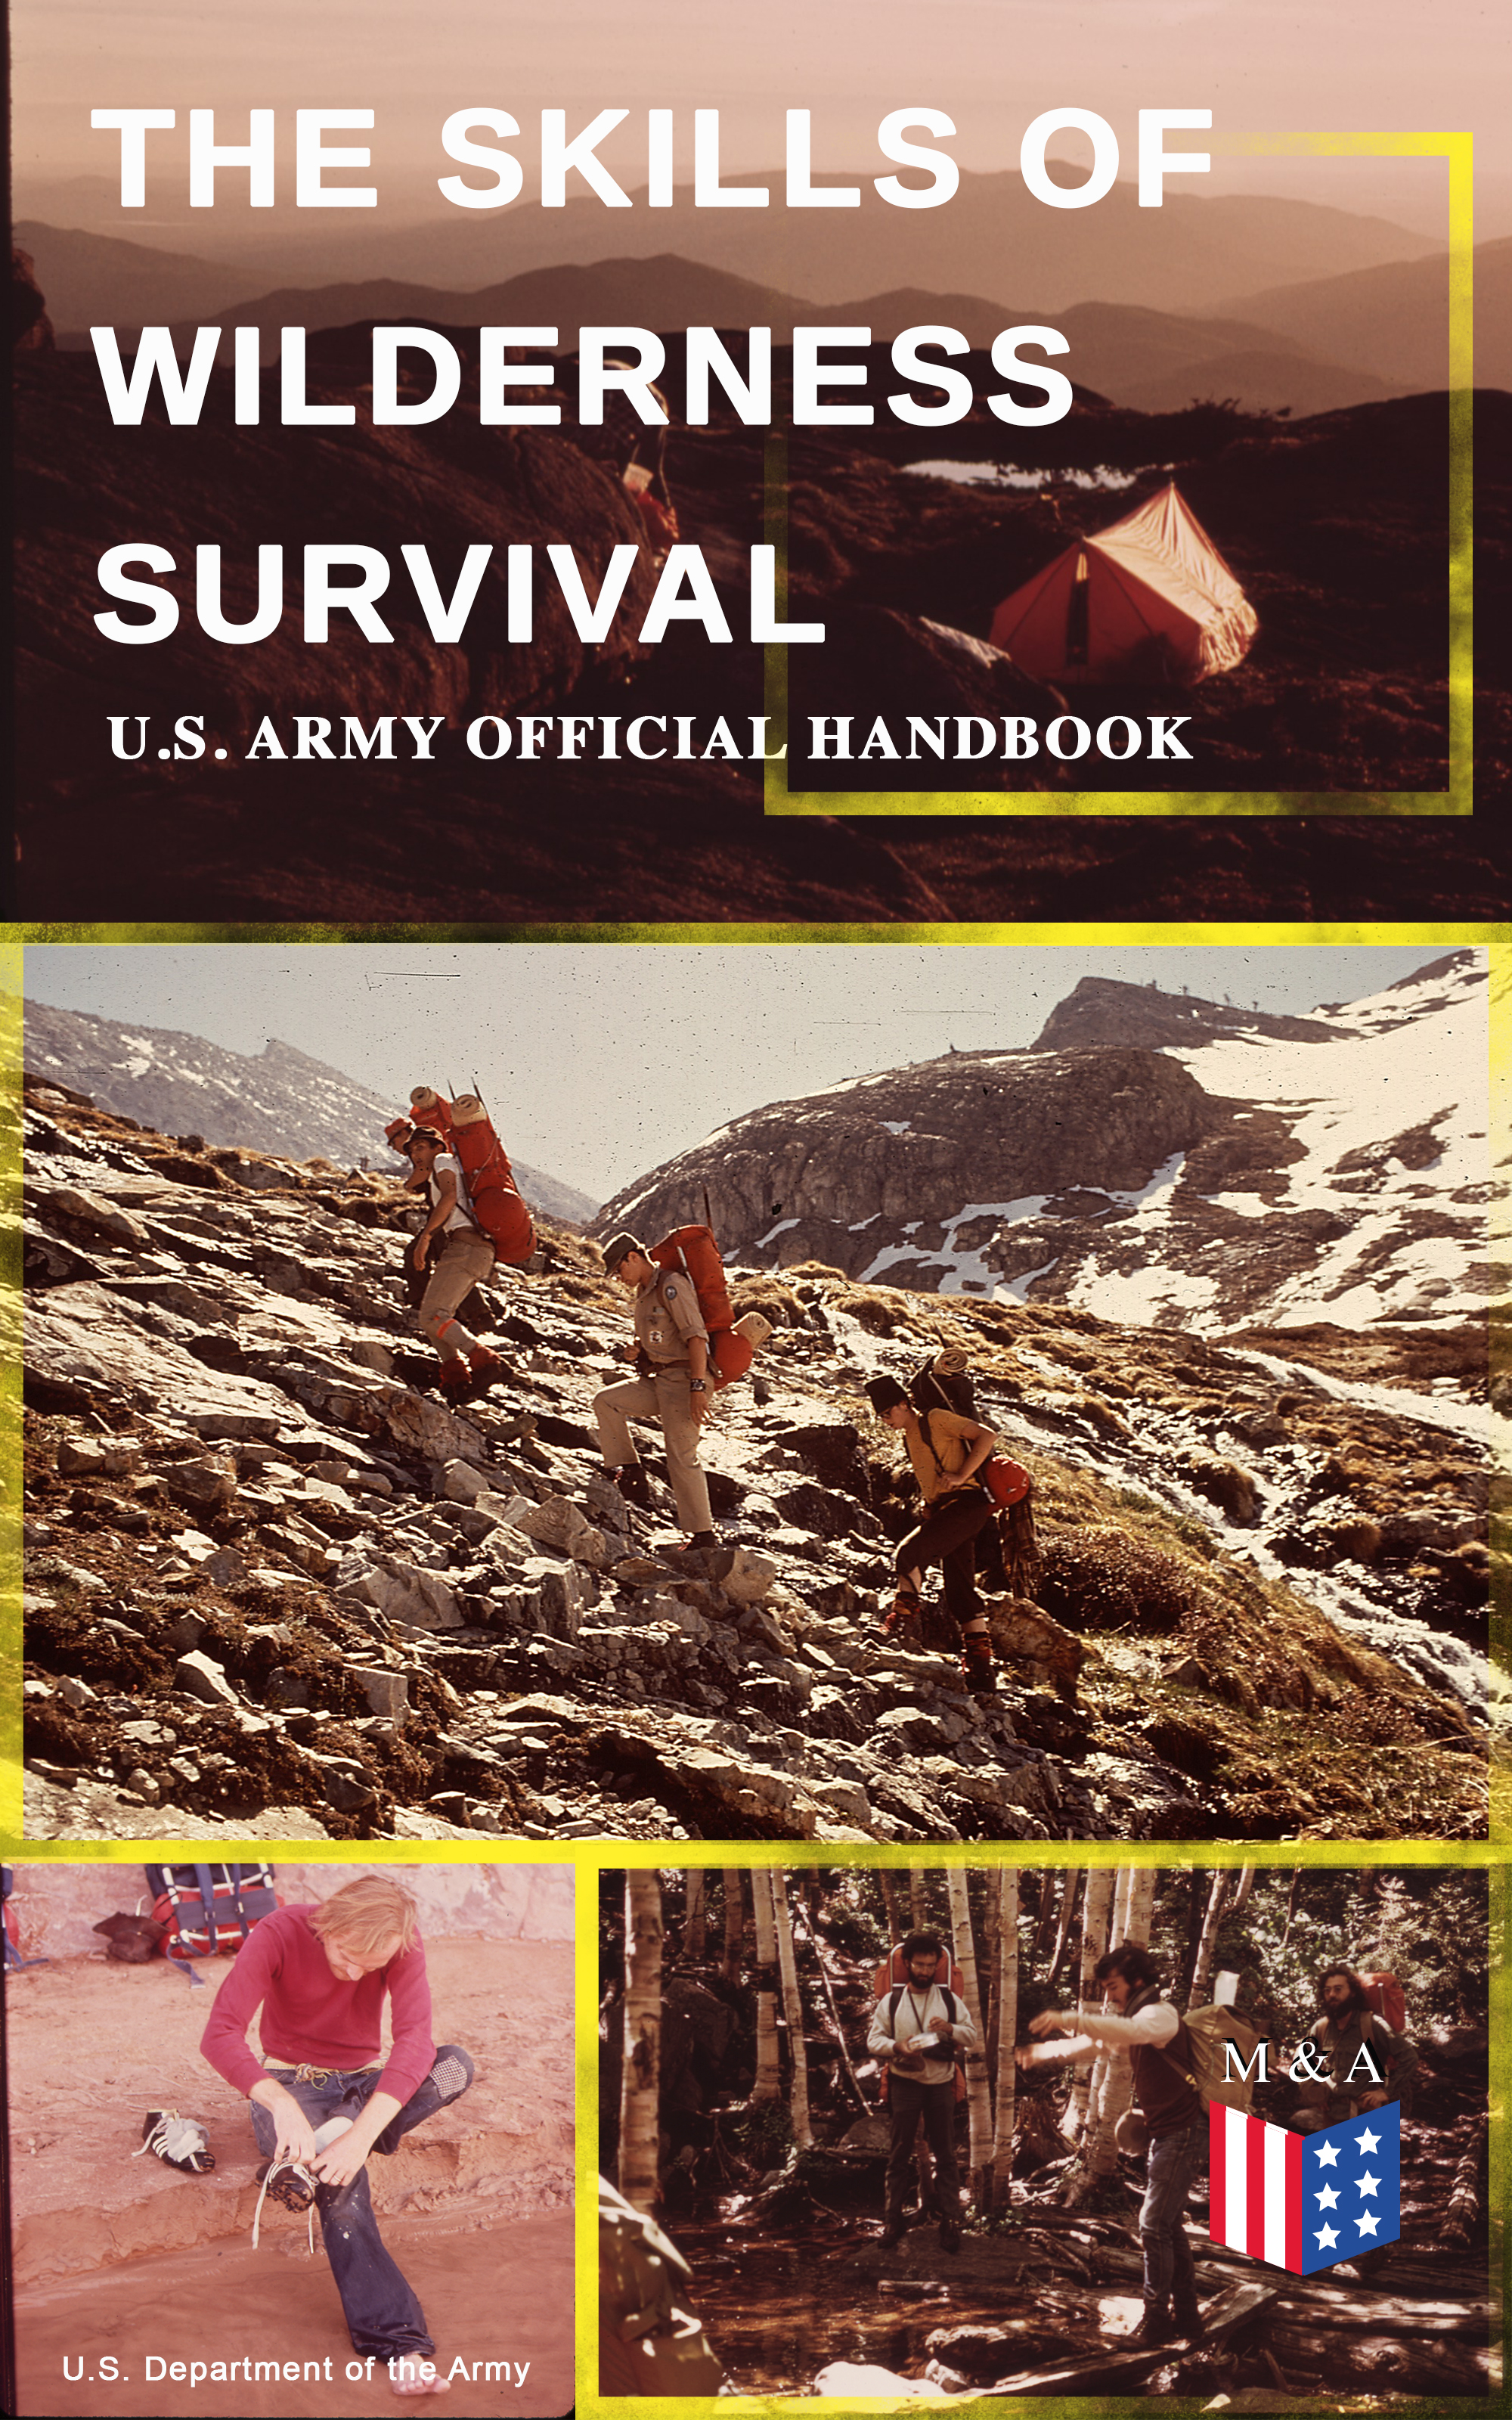 The Skills of Wilderness Survival - U.S. Army Official Handbook